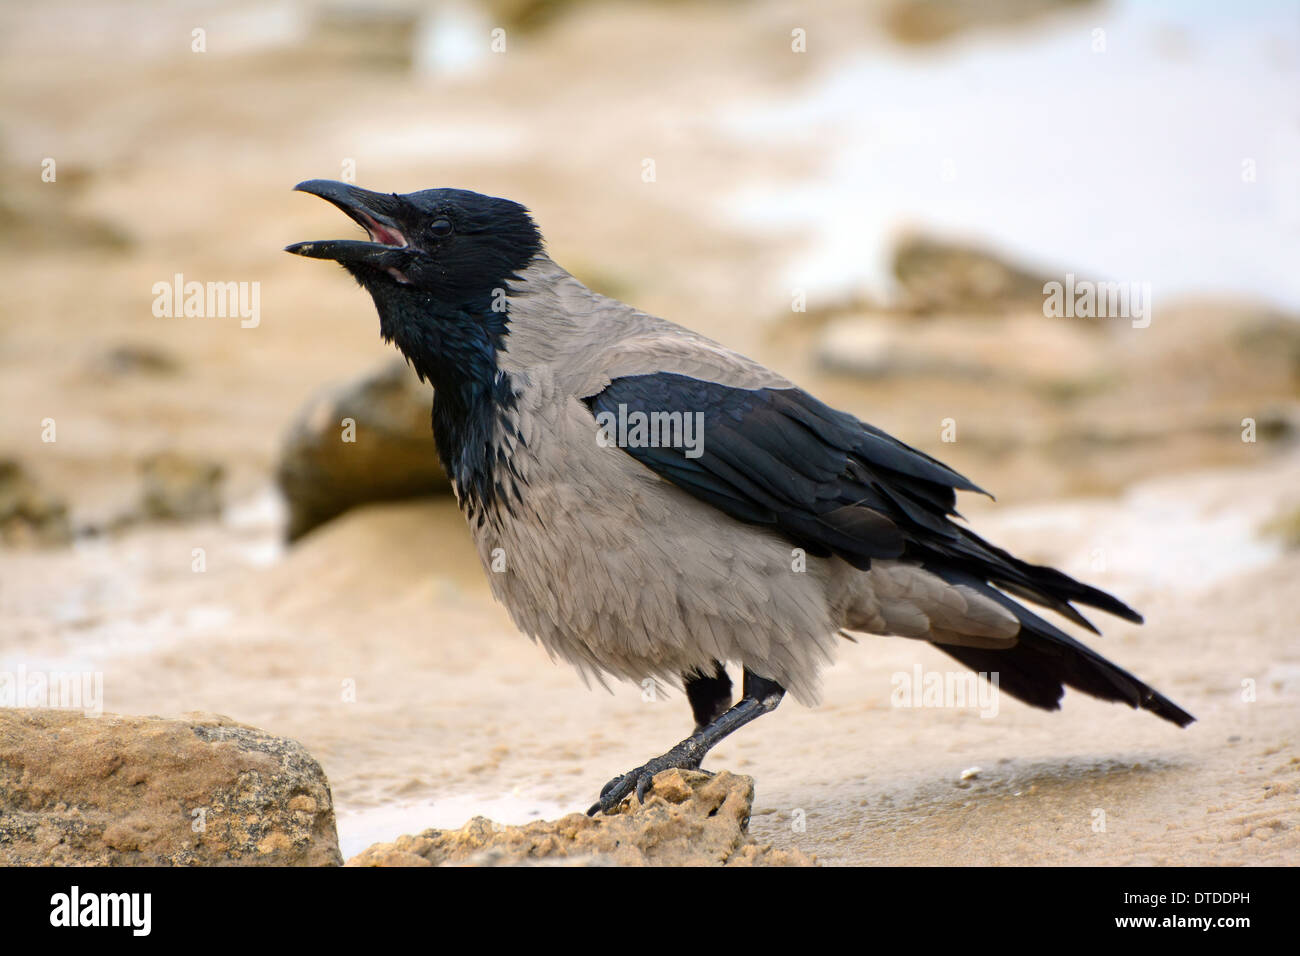 Hooded Crow, Corvus Cornix, calling Stock Photo: 66679049